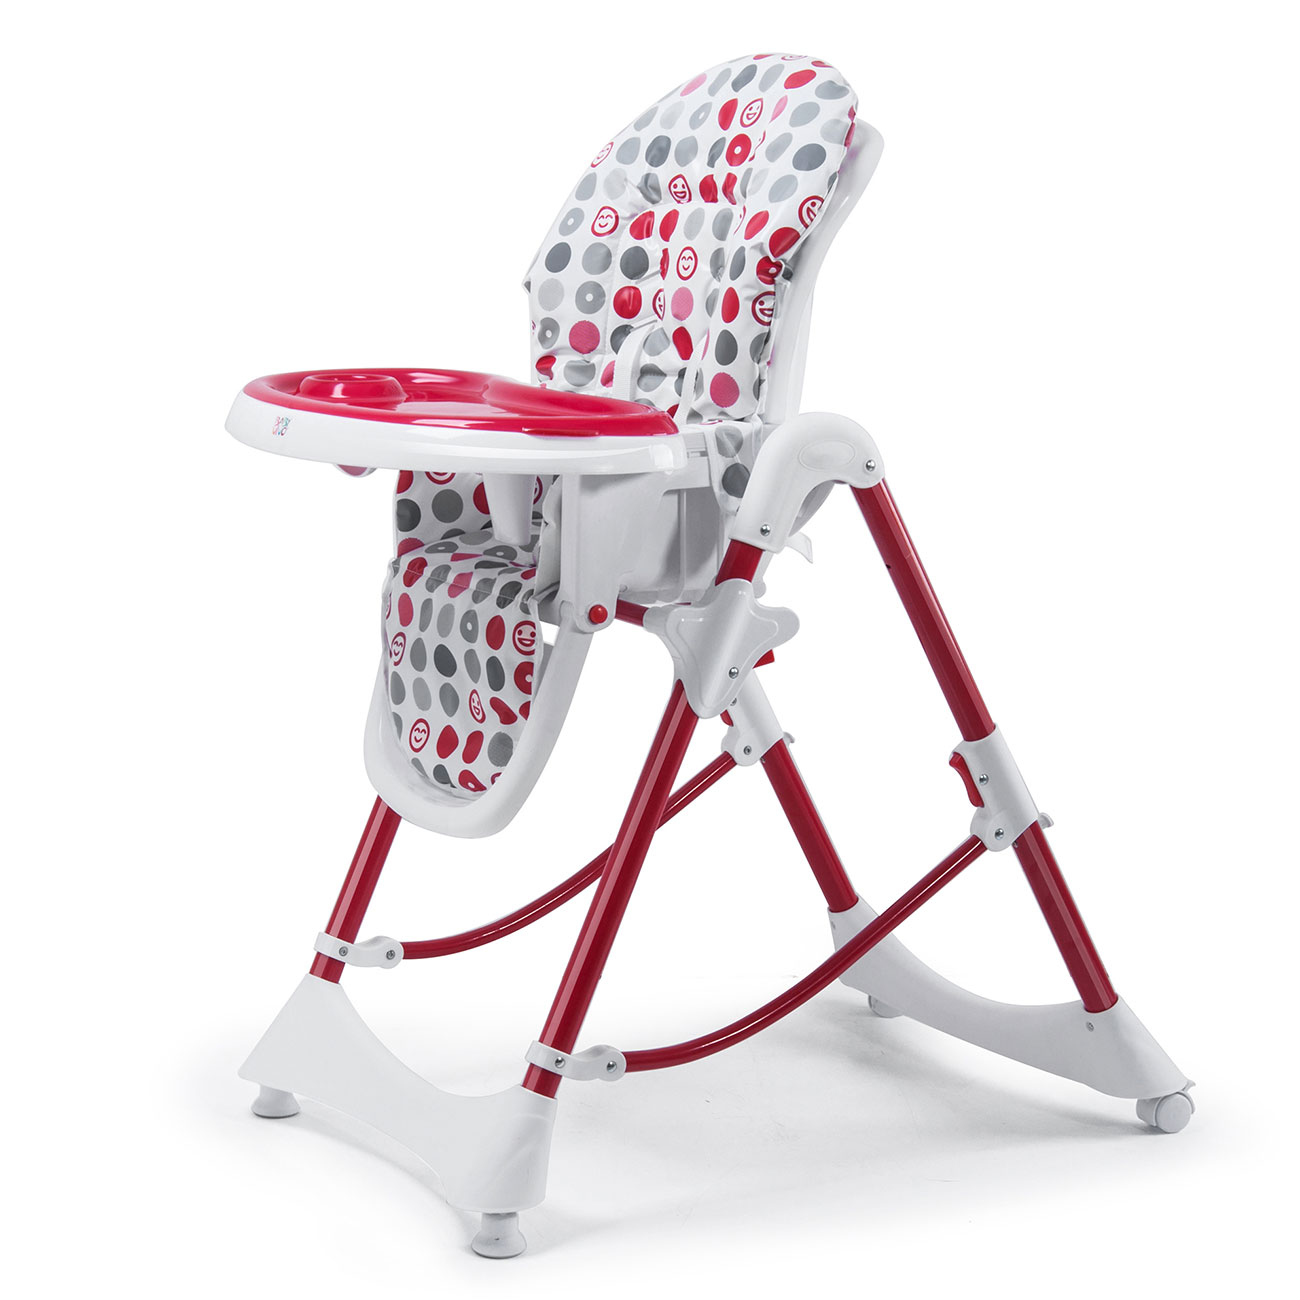 BABY VIVO Baby High Chair Infant Feeding Seat Tippy in